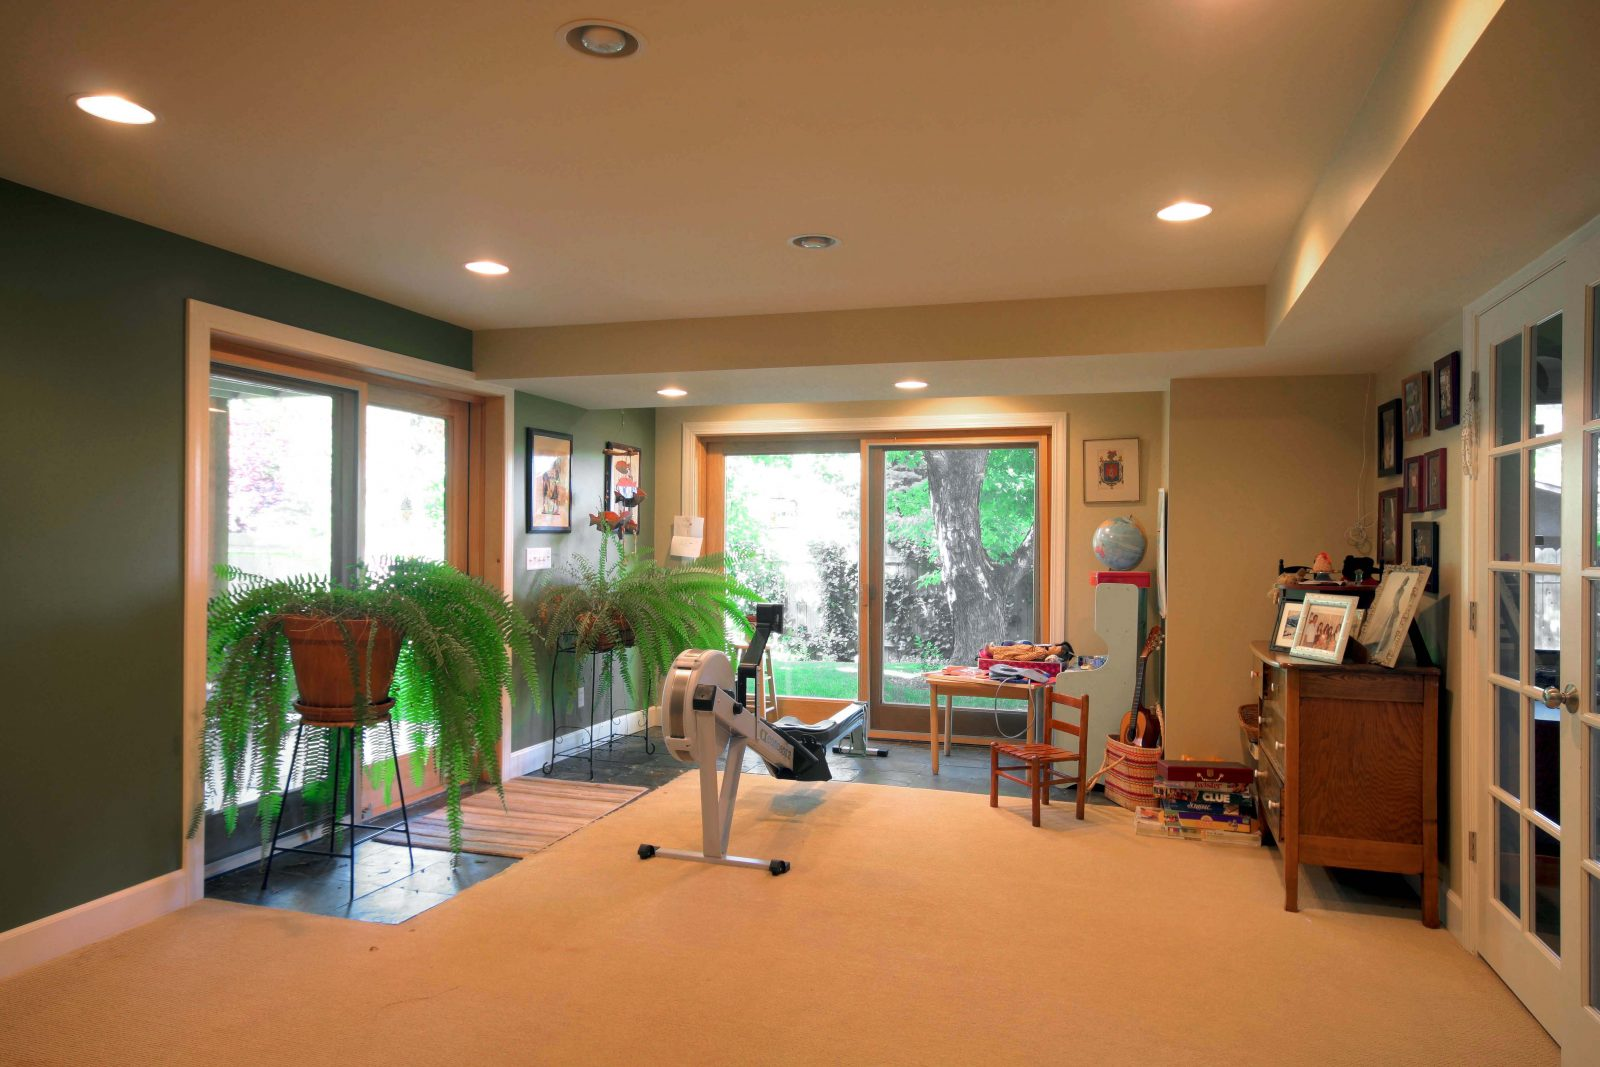 After_Interior Design_Exercise Room_Rambler Addition | Renovation Design Group